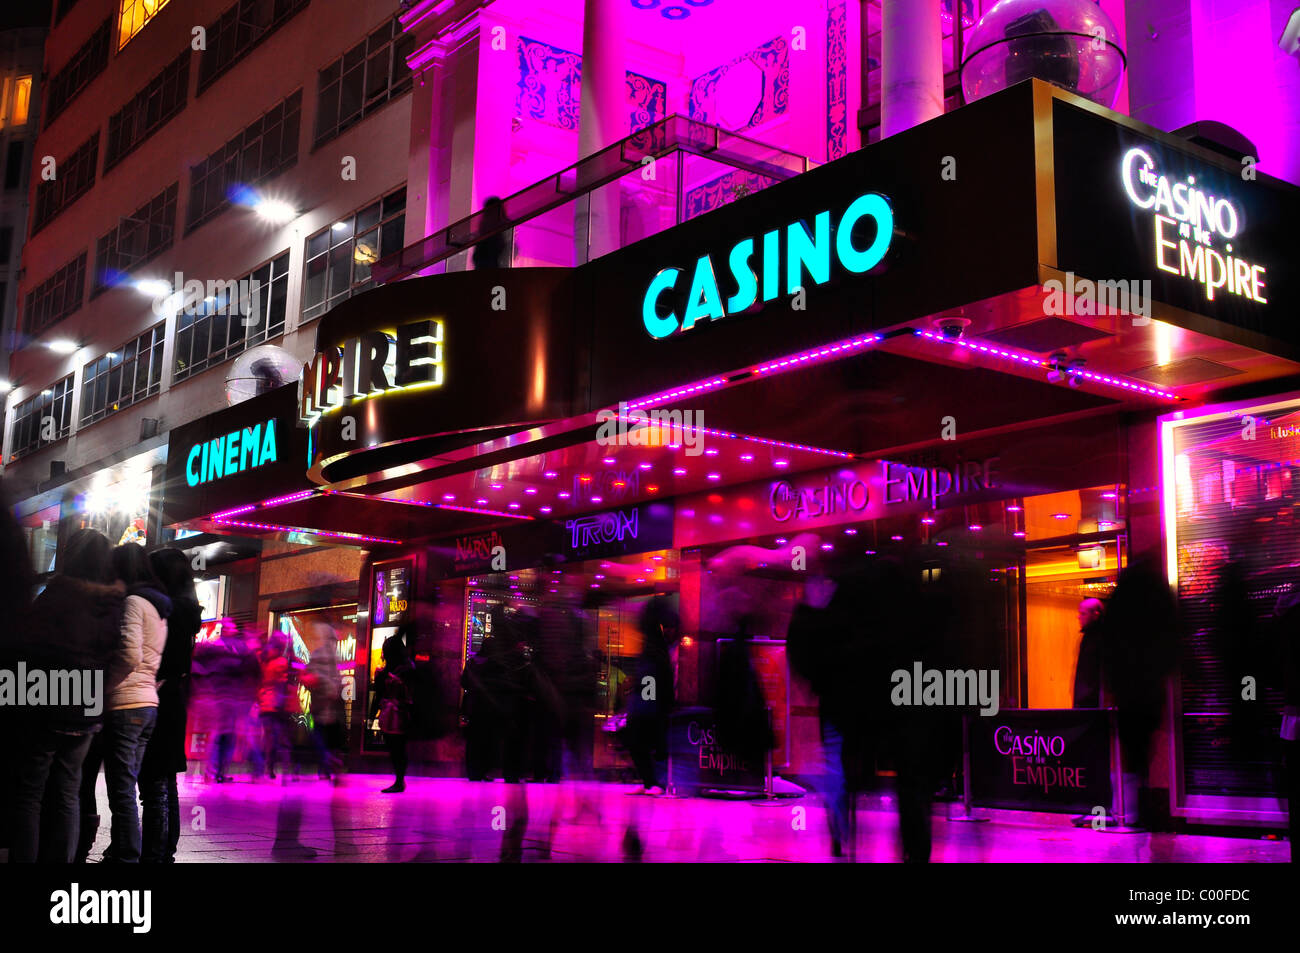 Empire, Leicester Square, London - Stock Image